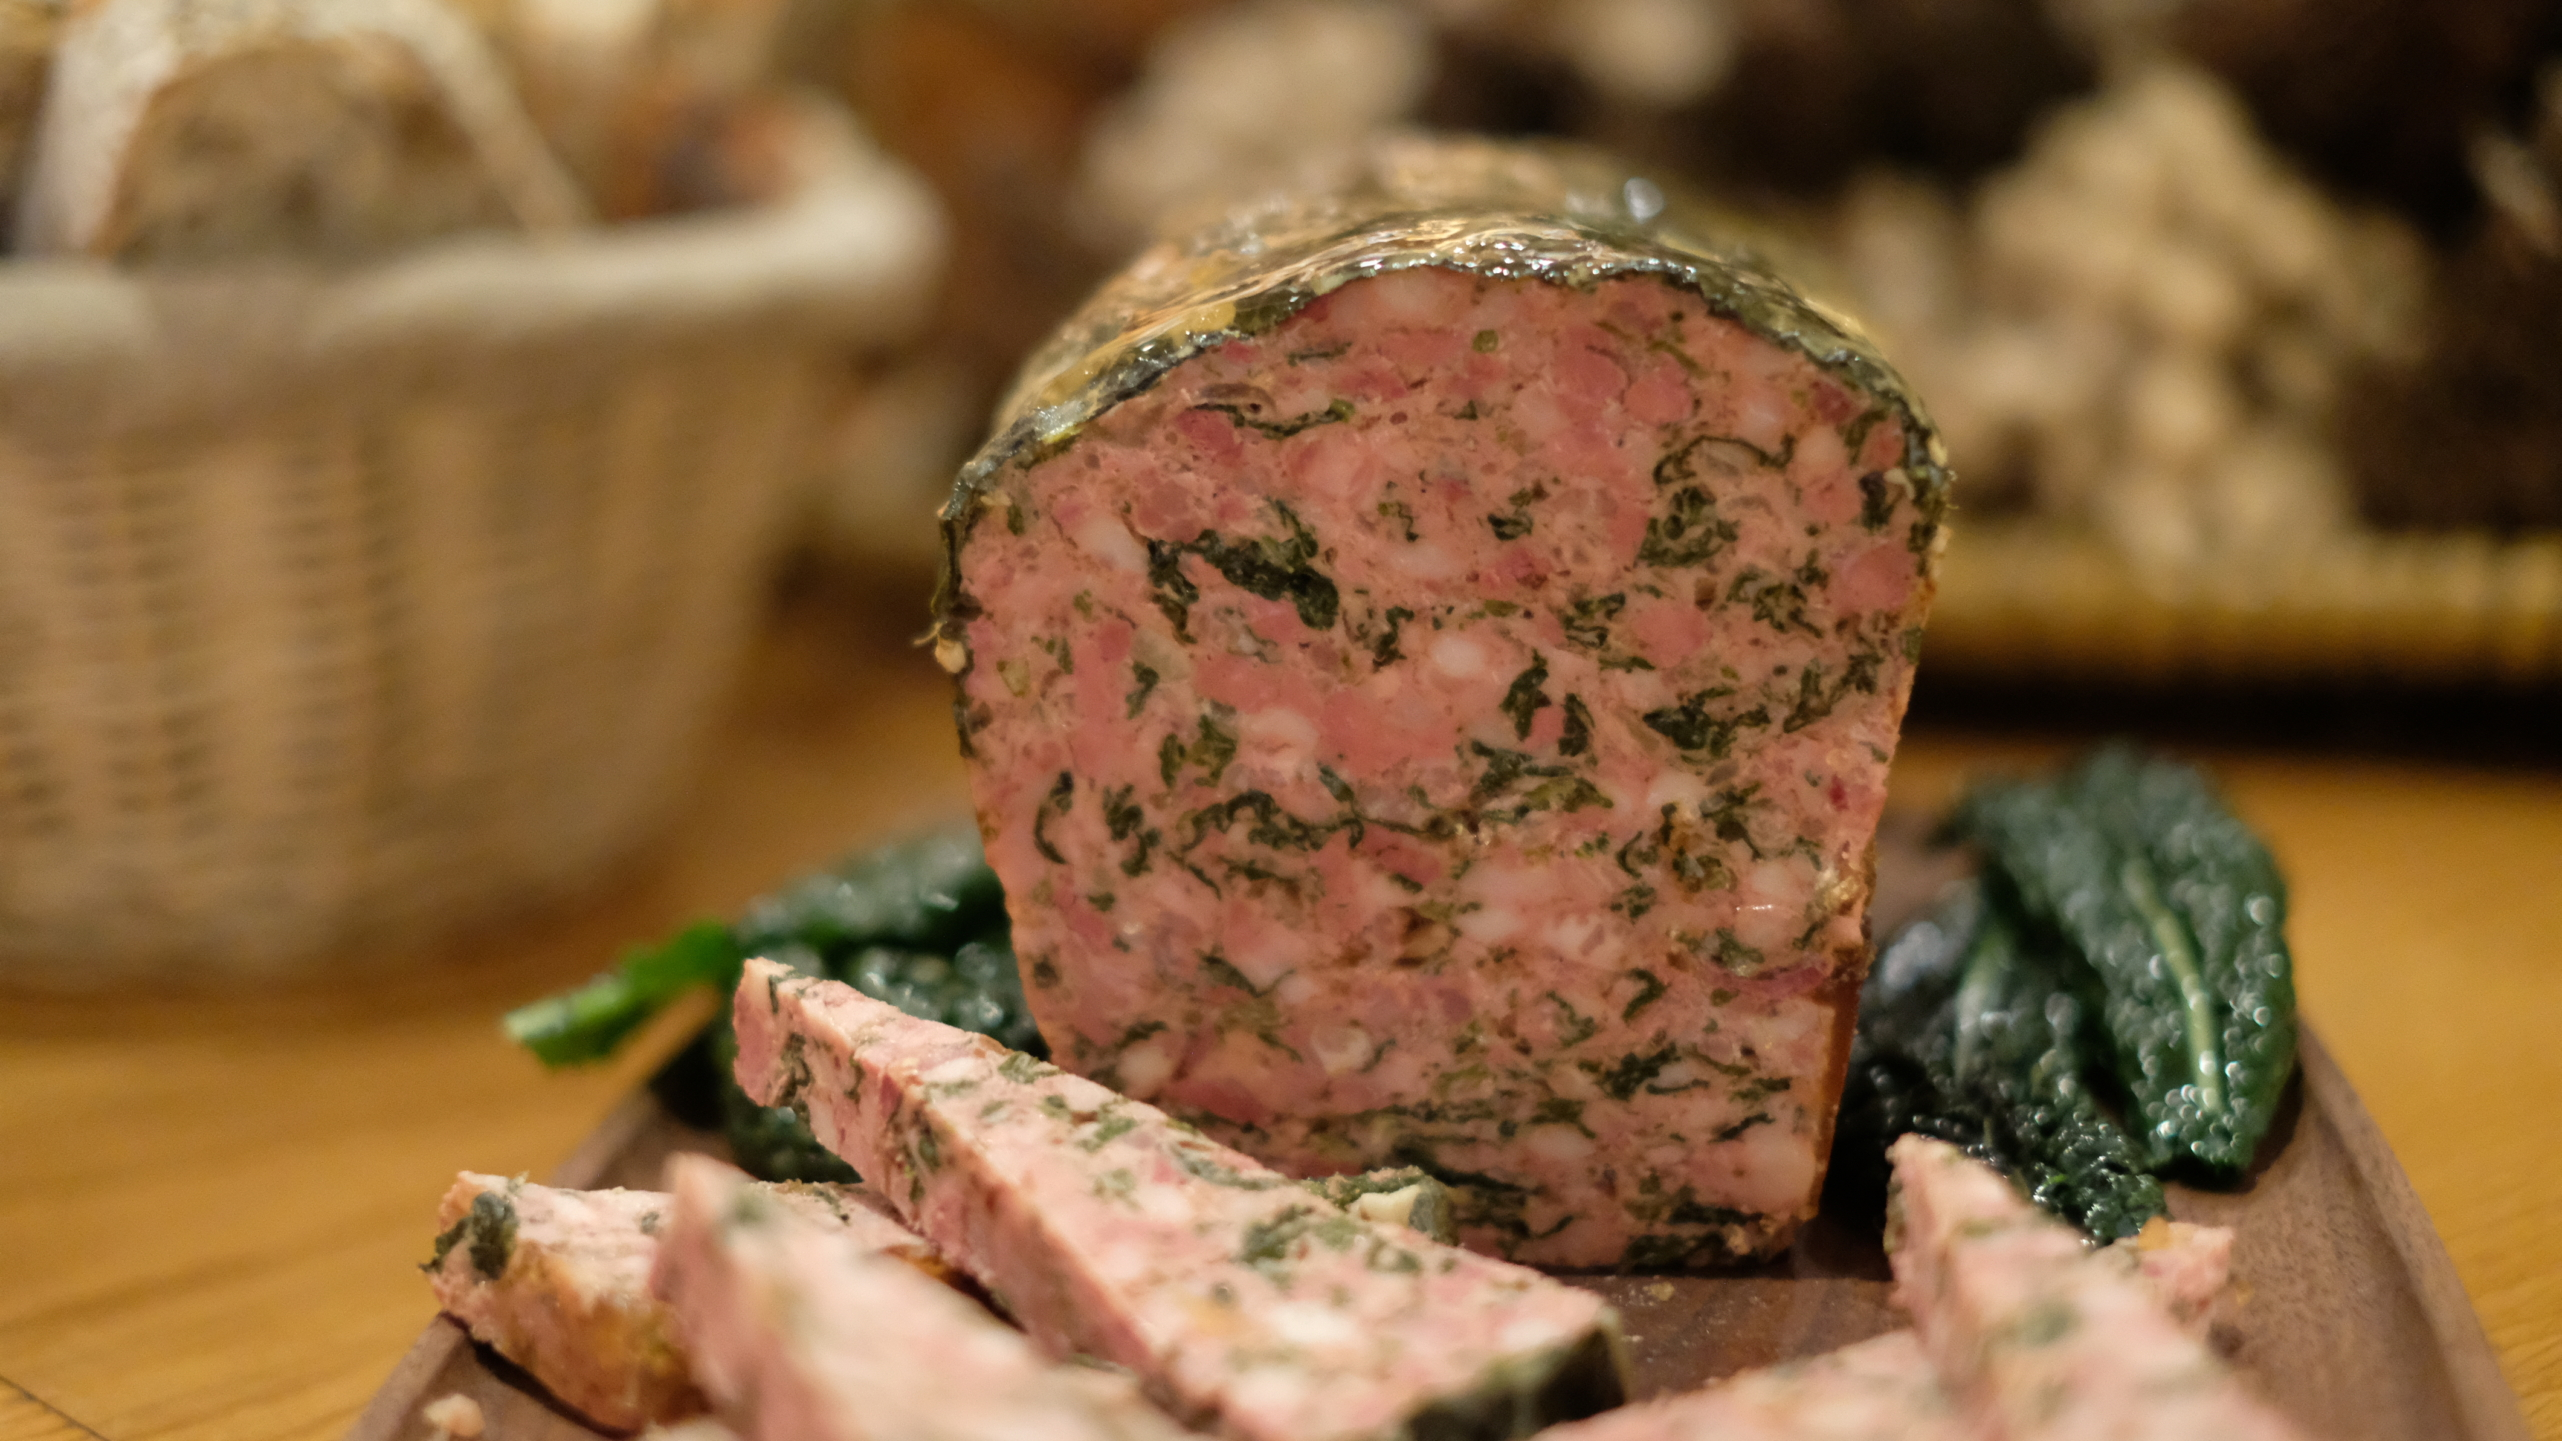 Learn From An Expert With A Charcuterie Tasting Experience